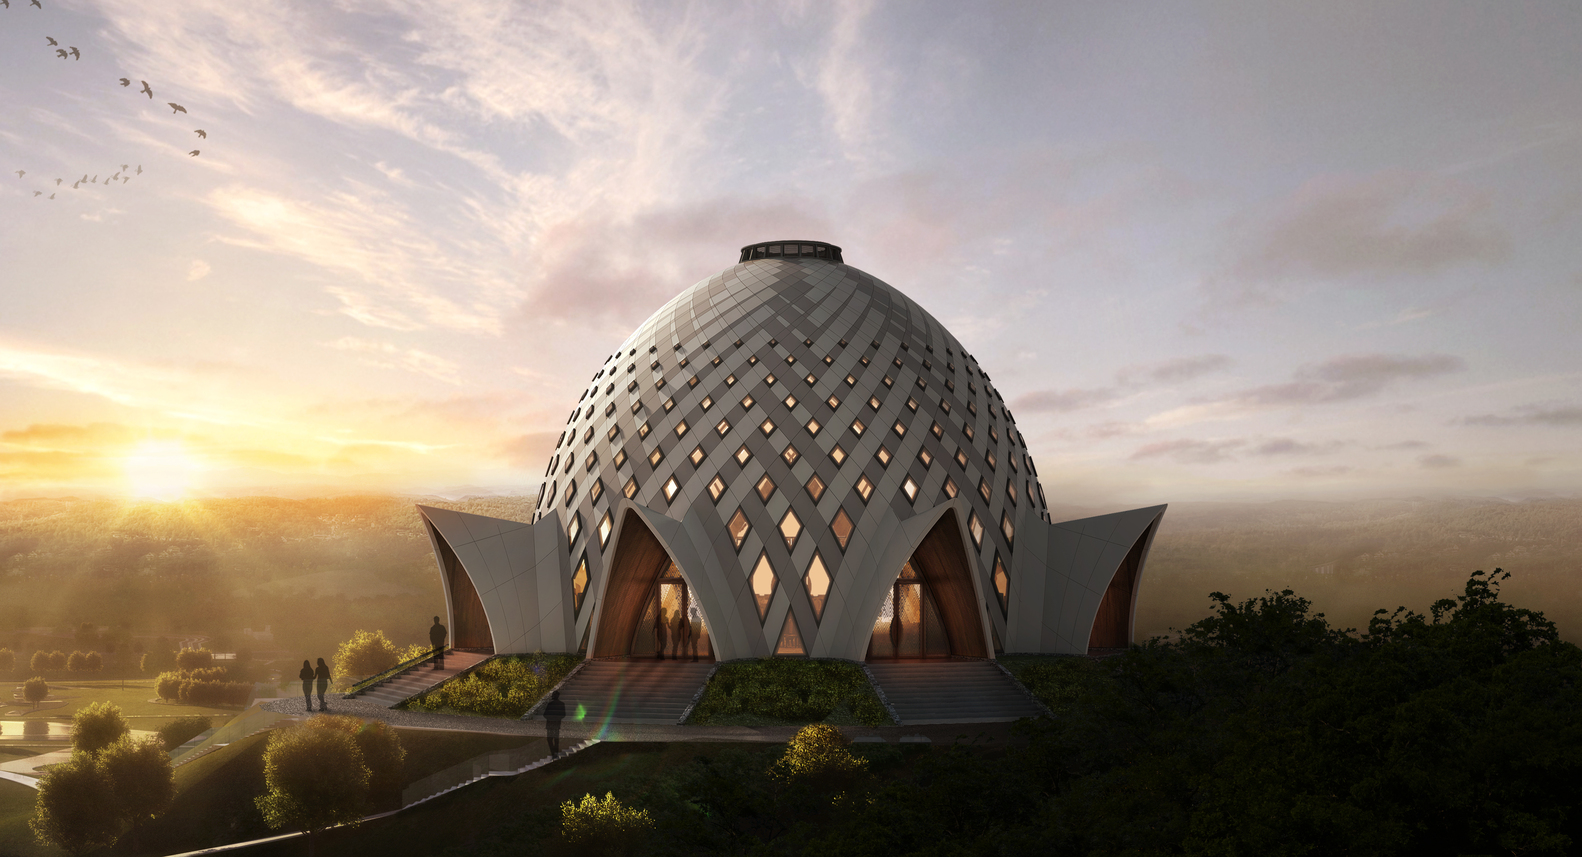 Gallery of Images Released for Bah House of Worship in Papua 1582x857